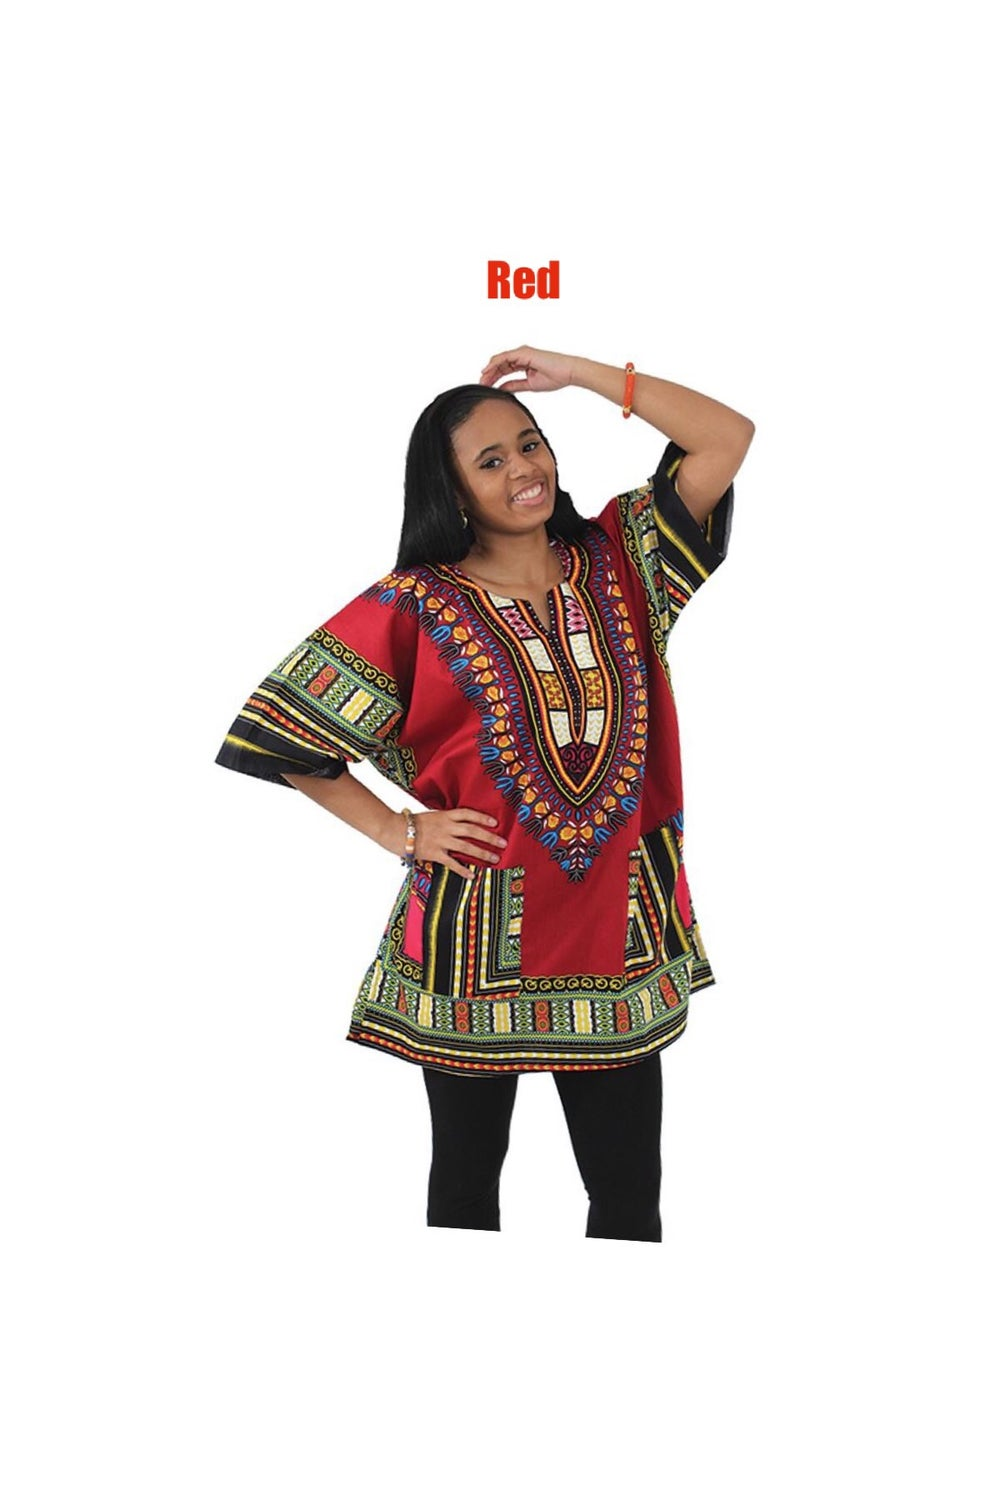 SUPERSIze King&Queen DAshiki